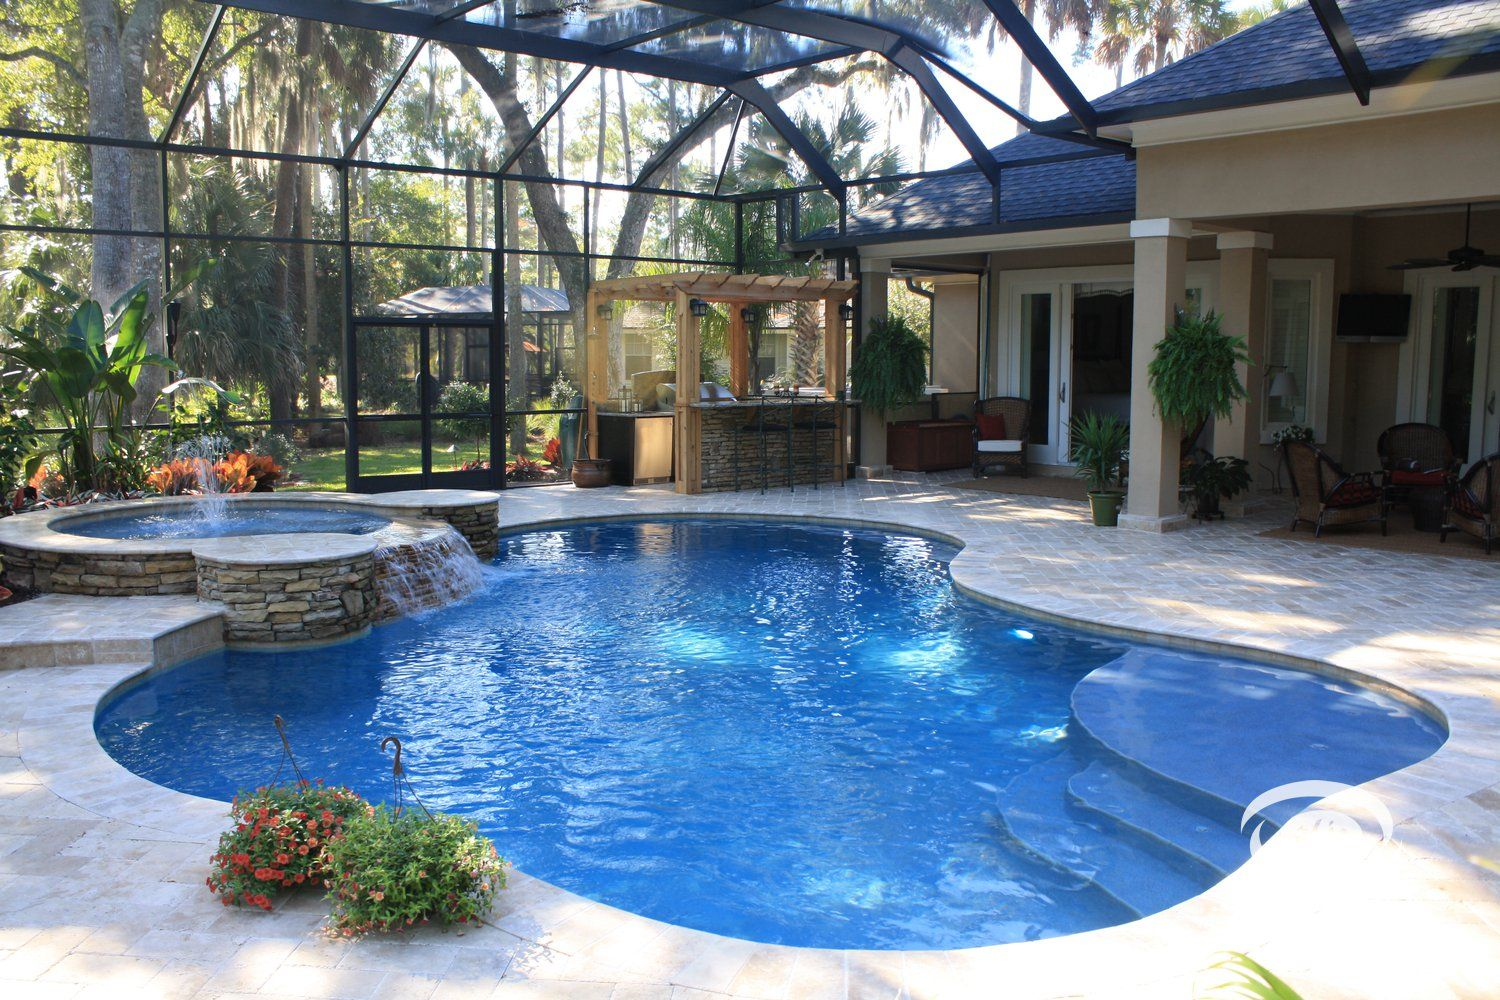 Freeform Pool By Pools By John Clarkson Florida Pool Indoor Outdoor Pool Luxury Swimming Pools